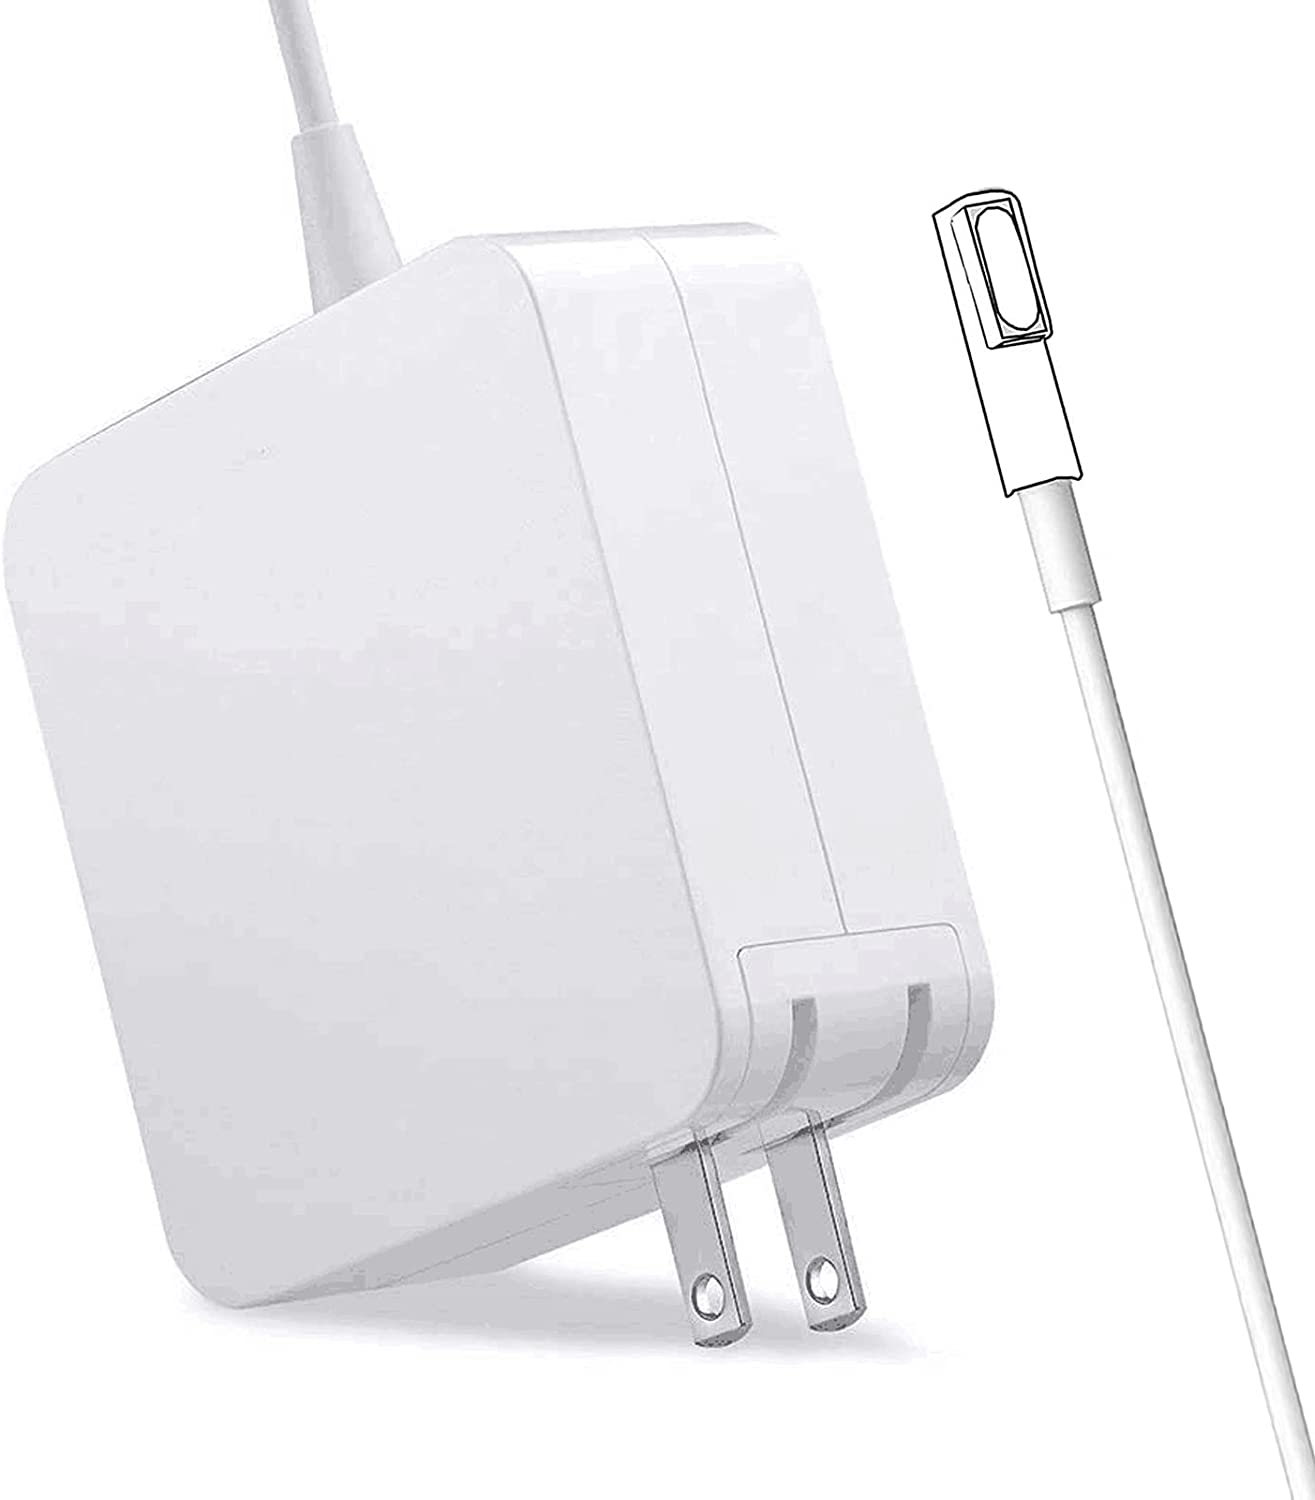 Mac Book Pro Charger,60W Power Adapter Magnetic L-Tip Connector Charger for Mac Book and 13-inch Mac Book Pro